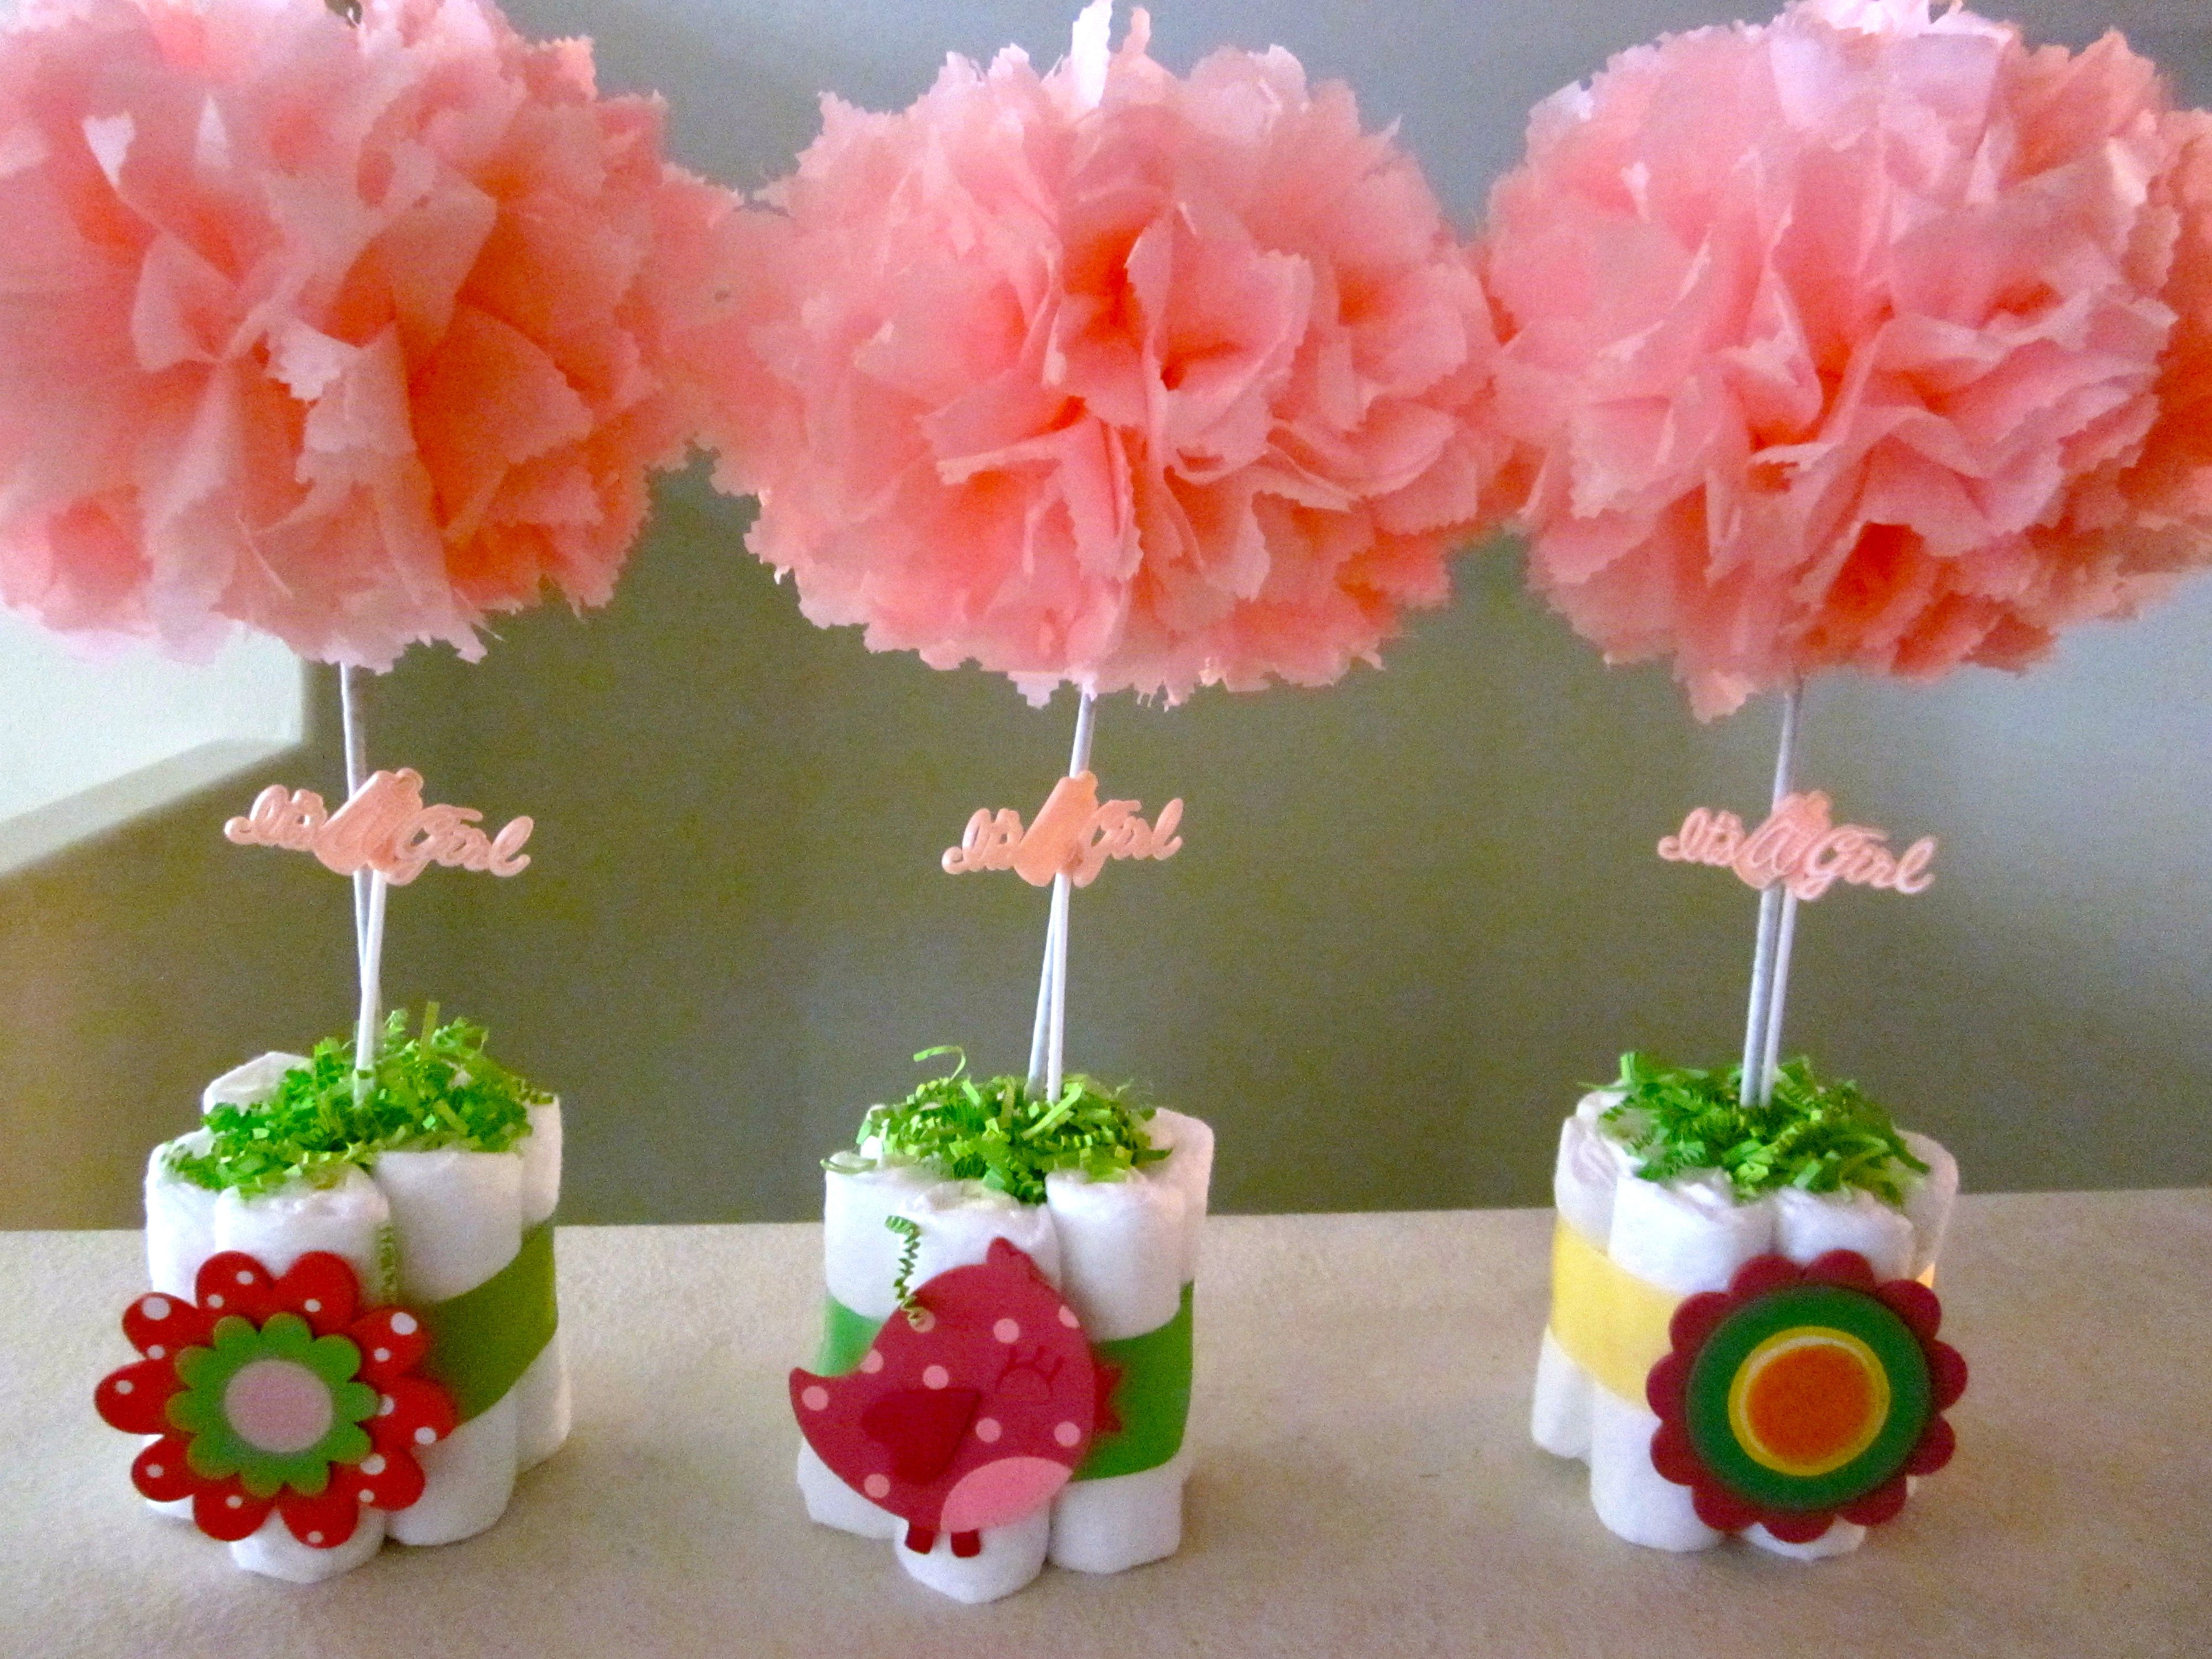 baby shower table centerpieces | Baby party | Pinterest ...